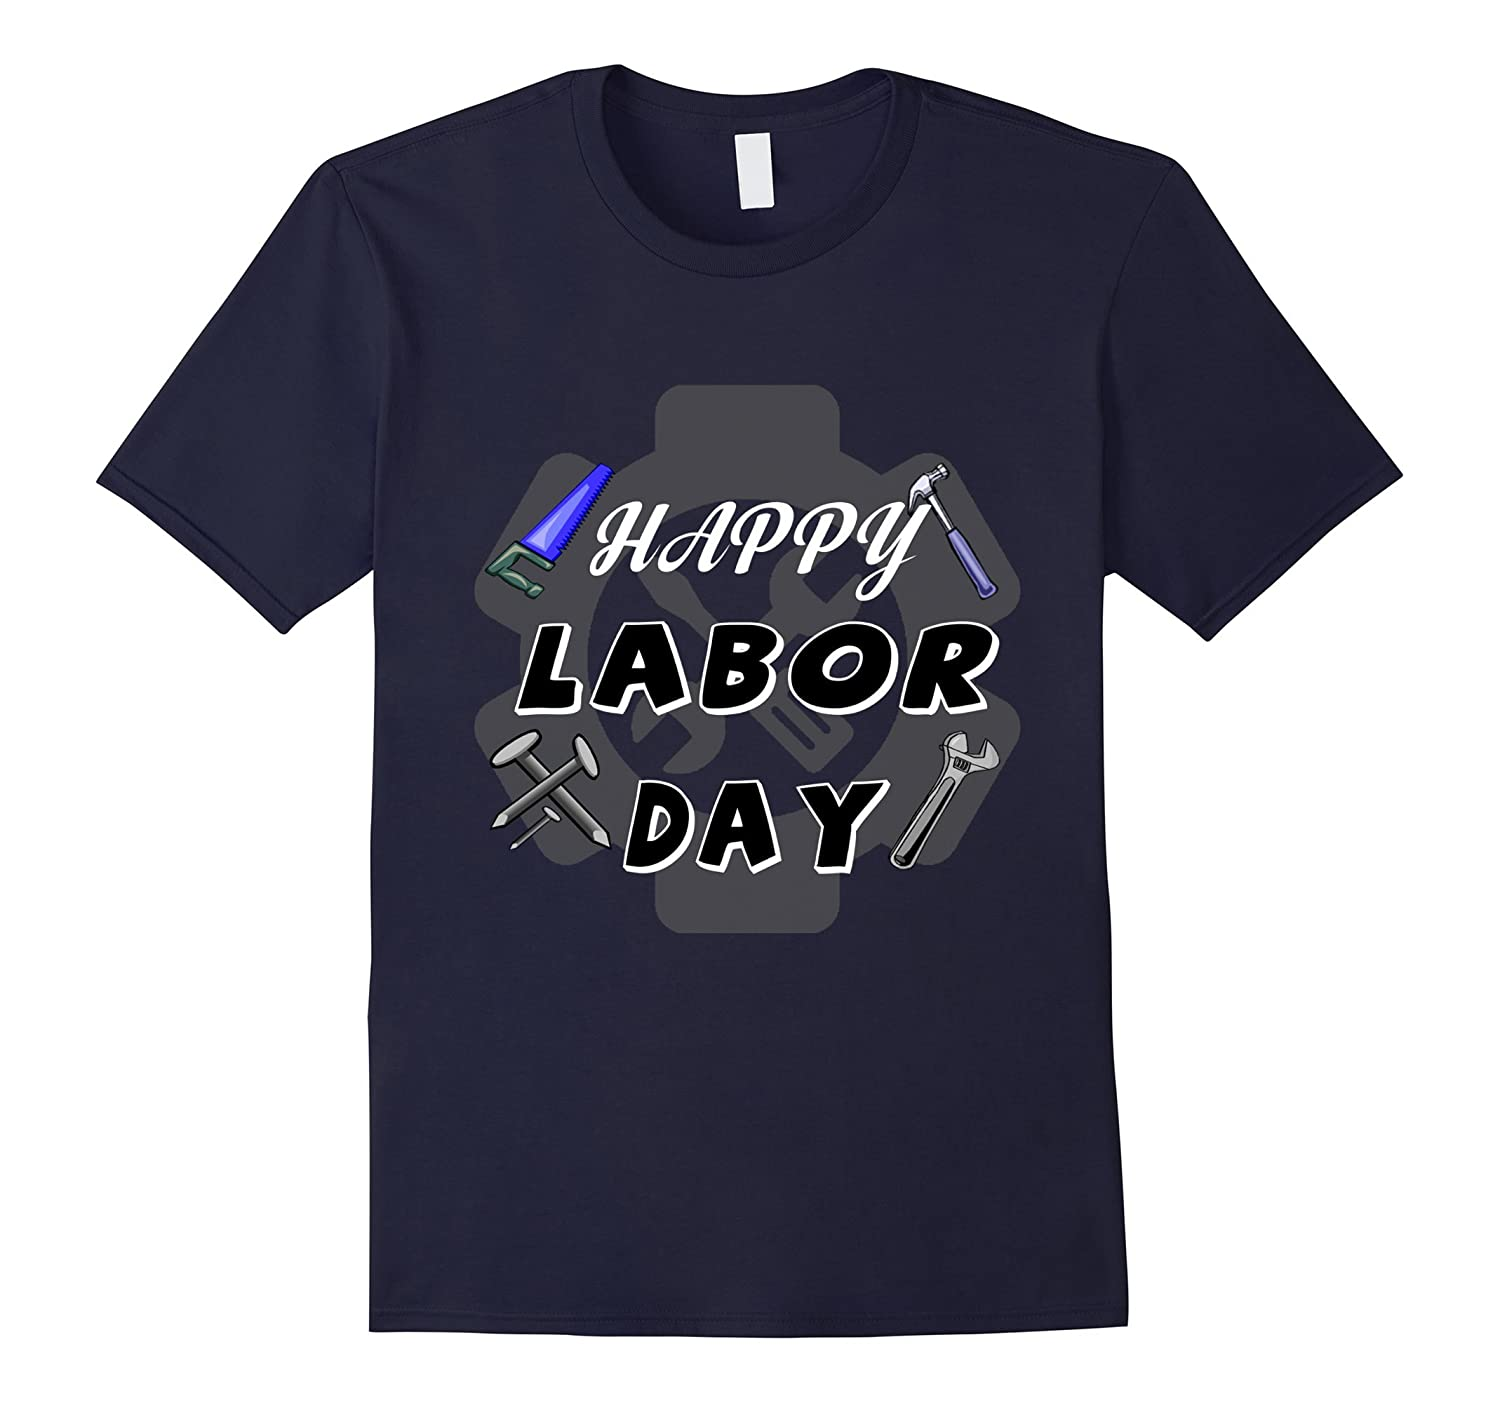 Happy labor day 2017 t-shirt gift for men, women-BN